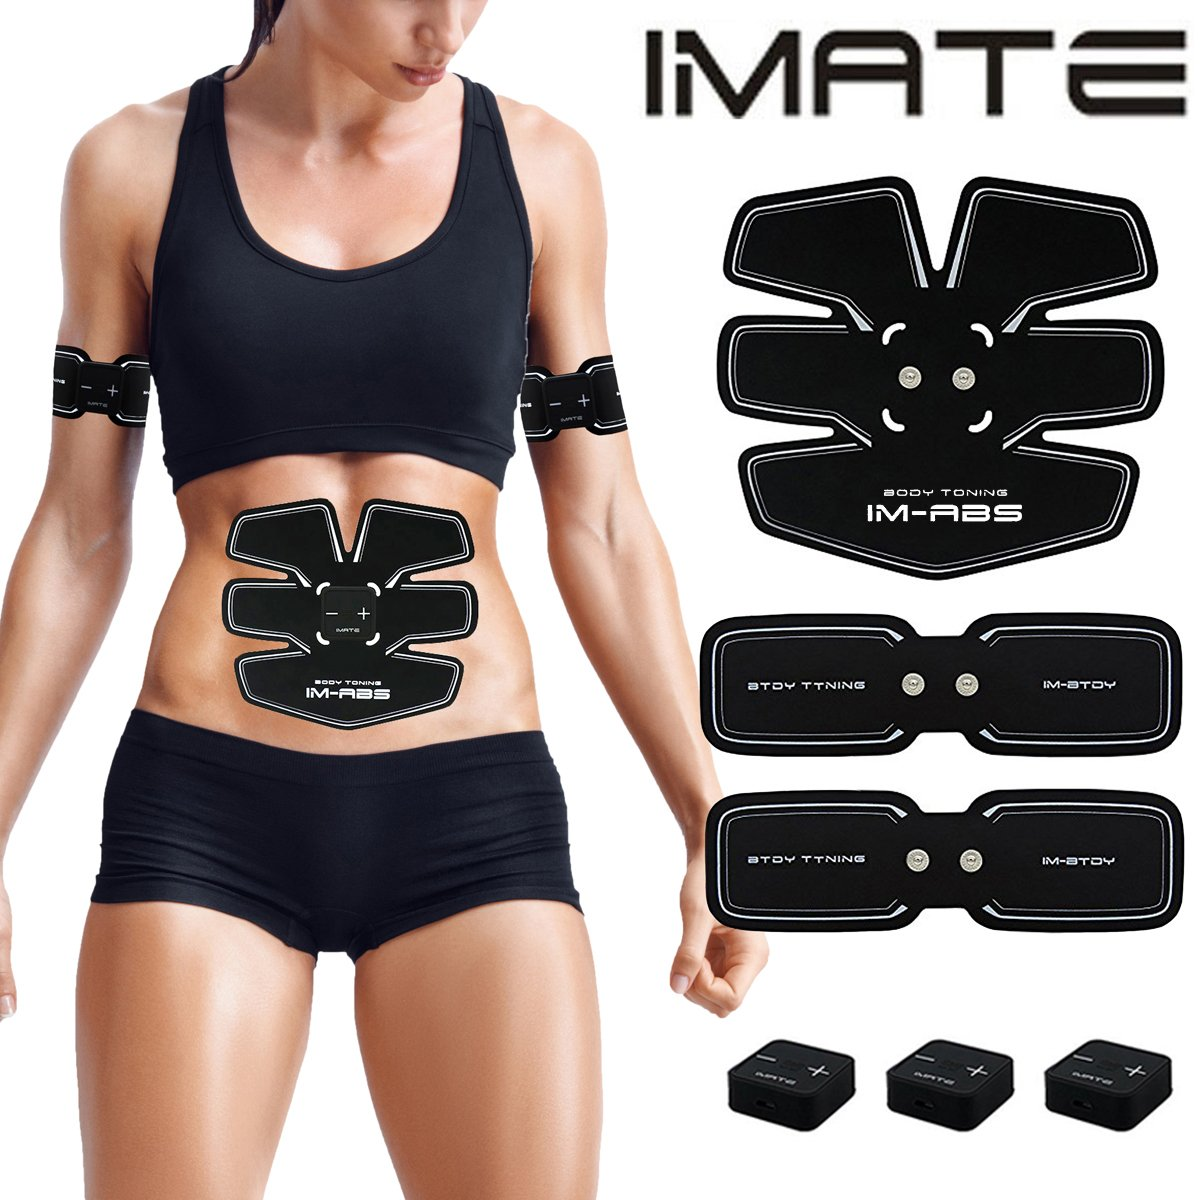 IMATE Abdominal Muscle Toner, Abdominal Toning Belt Smart Abdominal fitness equipment home office abdominal muscle Portable Fitness Training Gear USB Chargeable BODY GYM for Abdomen/Arm/Leg/Waist by IMATE